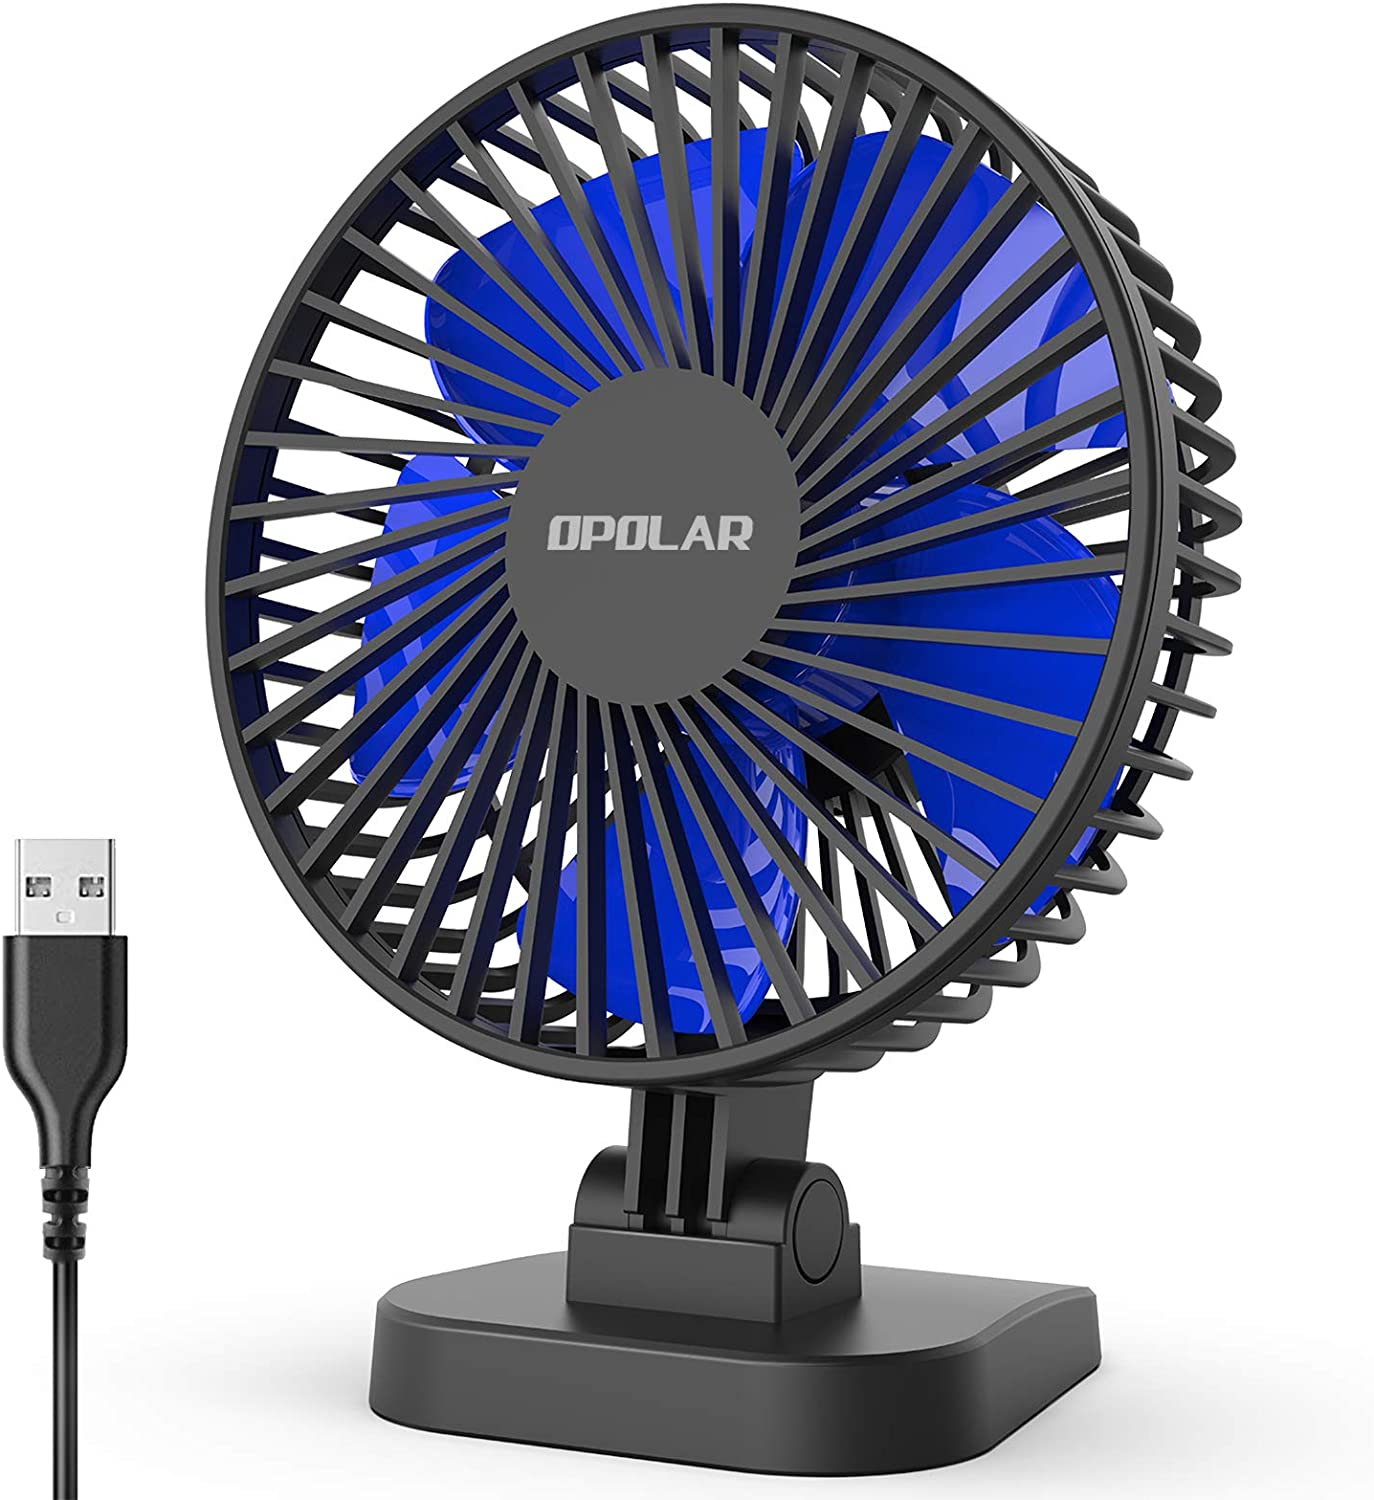 OPOLAR USB Desk Fan, Small but Mighty, Quiet Portable Fan for Desktop Office Table, 40° Adjustment for Better Cooling, 3 Speeds, 4.9 ft Cord: Home & Kitchen